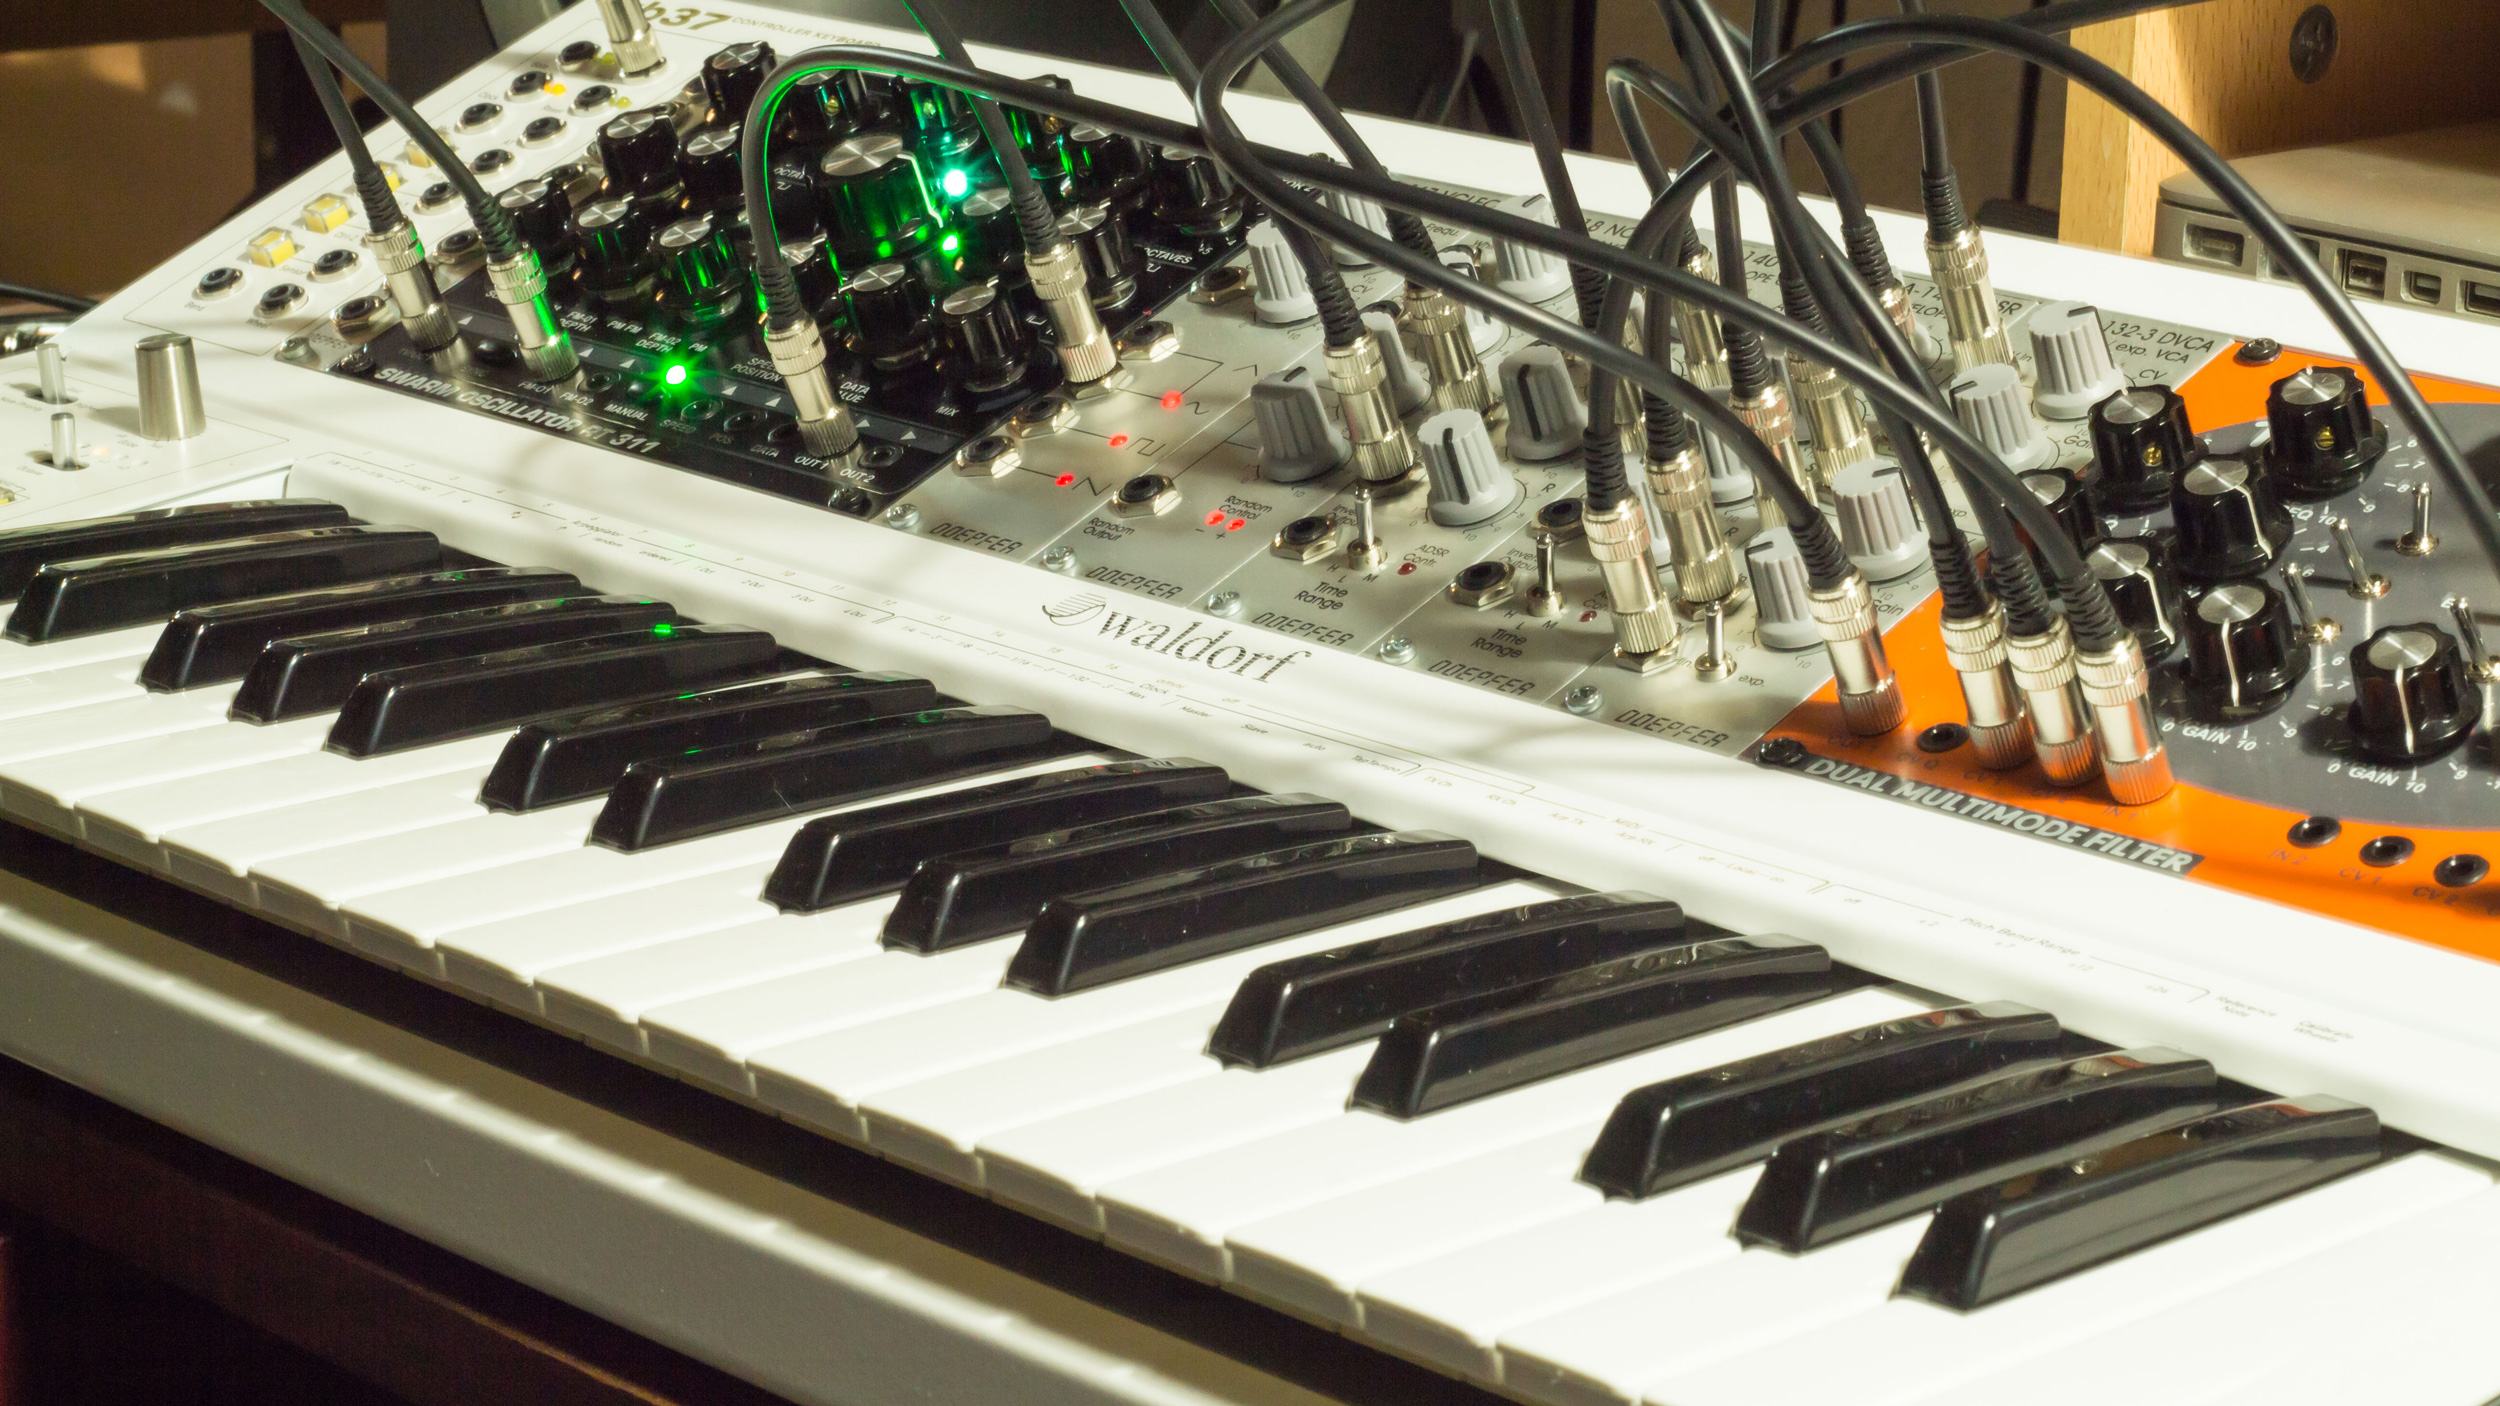 Radikal Technologies Eurorack Synthesizer Modules and the KB-37 Eurorack keyboard.